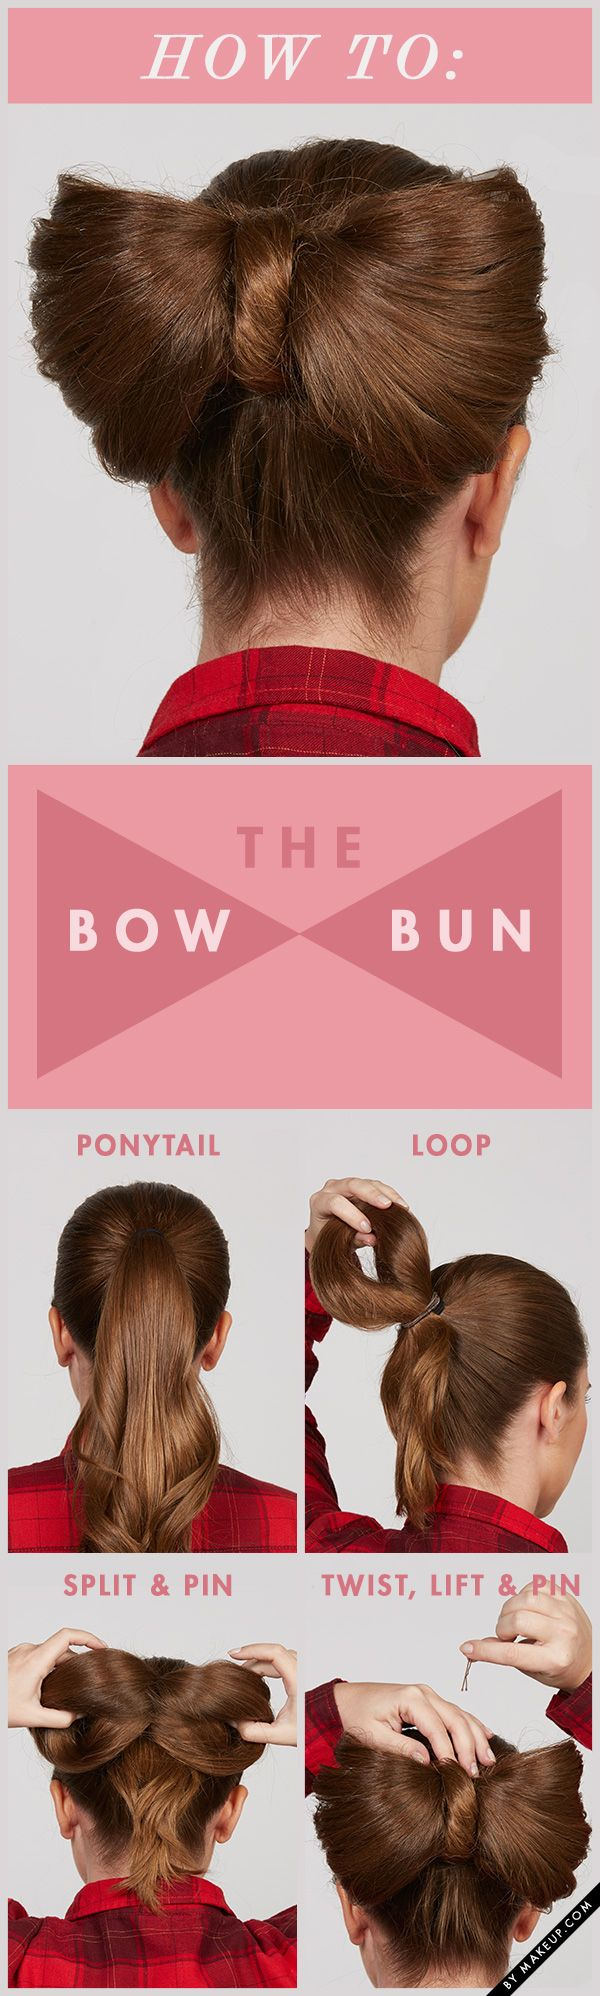 We all love a girly hairstyle. There's nothing more girly than bows and buns... so why not combine them in one hair do? We're obsessed with this bow bun how to!